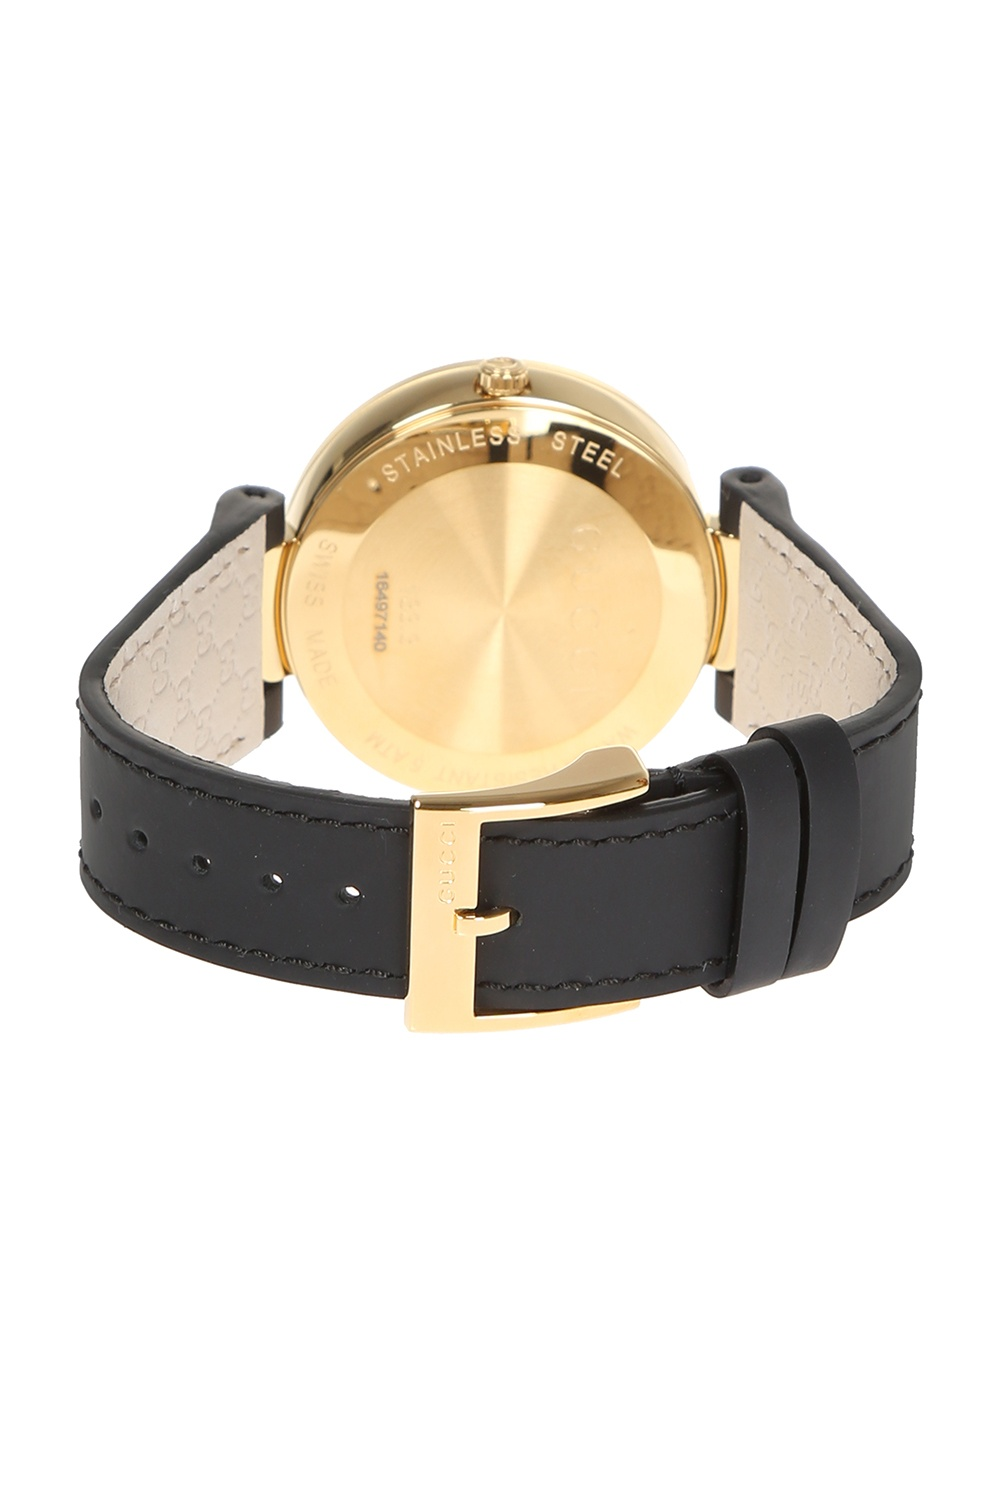 Gucci 'Interlocking' watch on leather strap